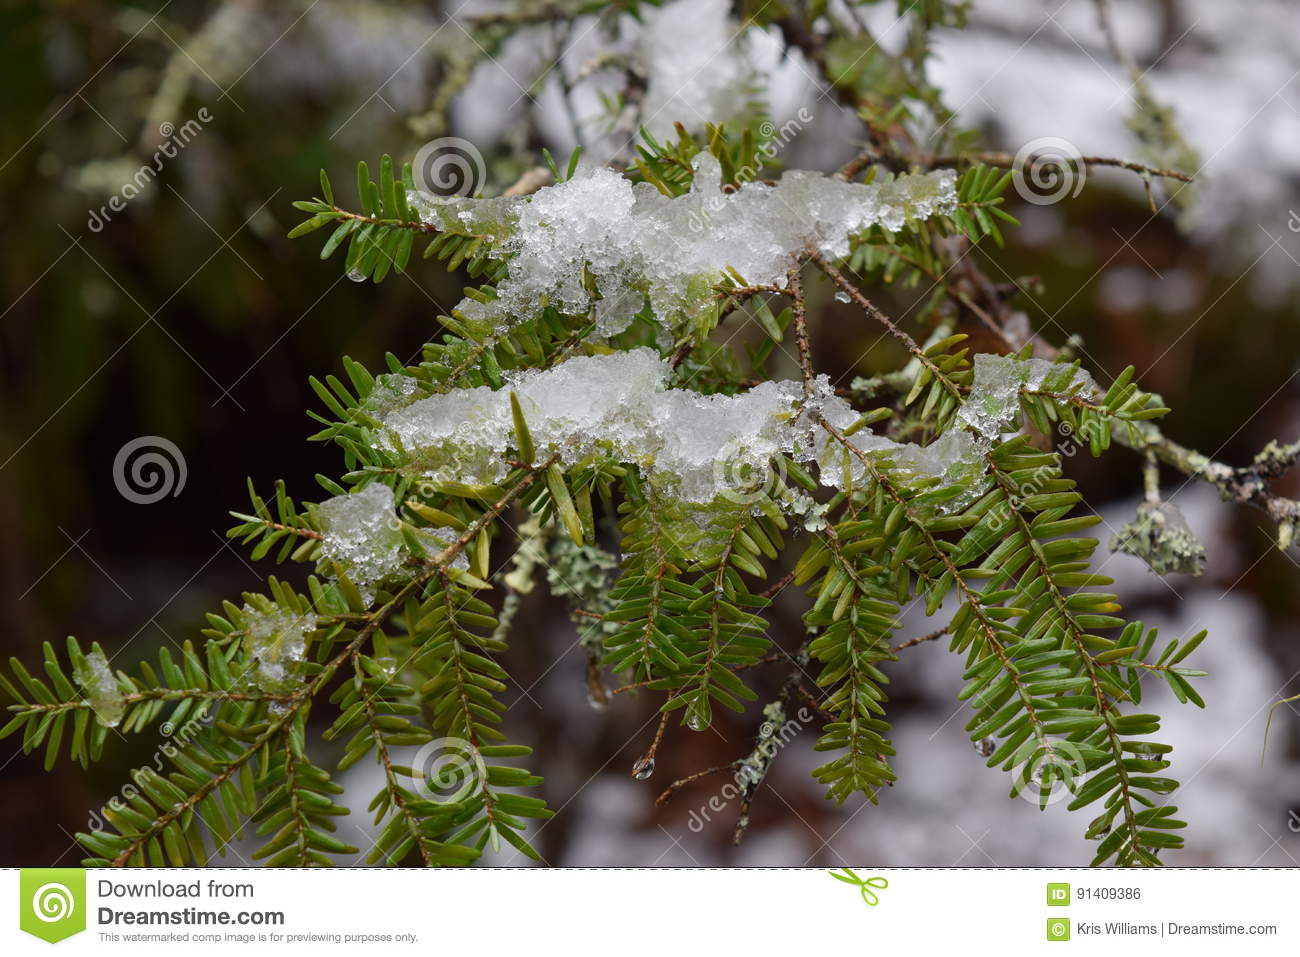 Last snow and ice early spring on a hemlock tree